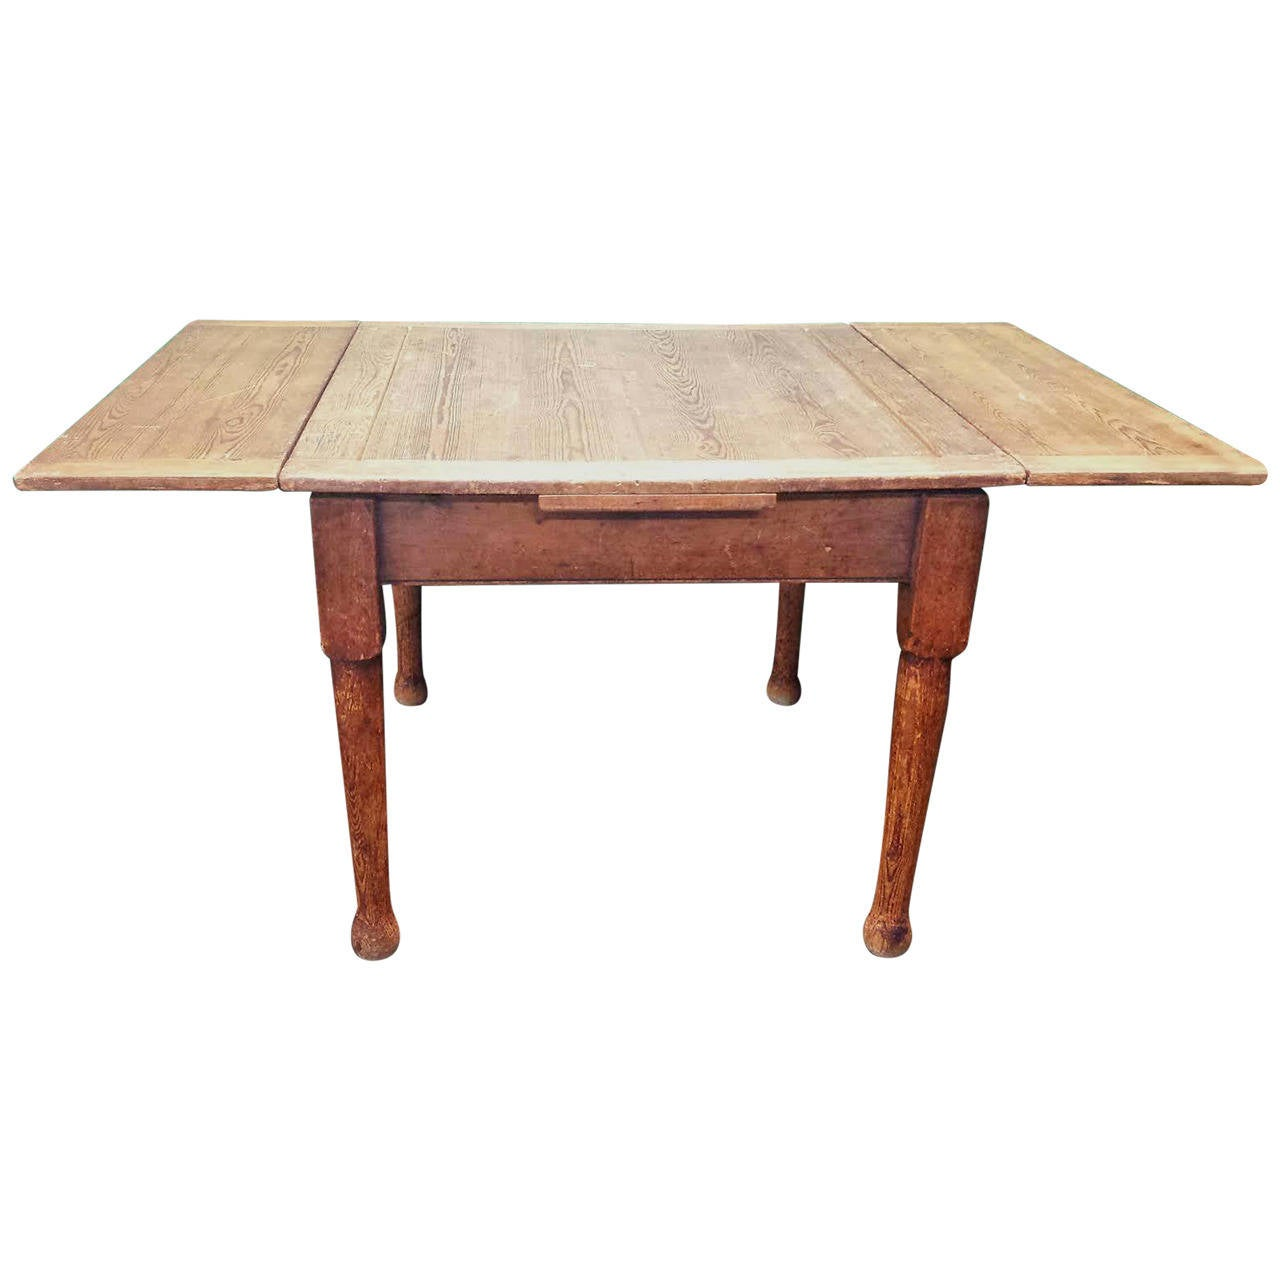 Farmhouse Dining Table With Leaves Drop Leaf